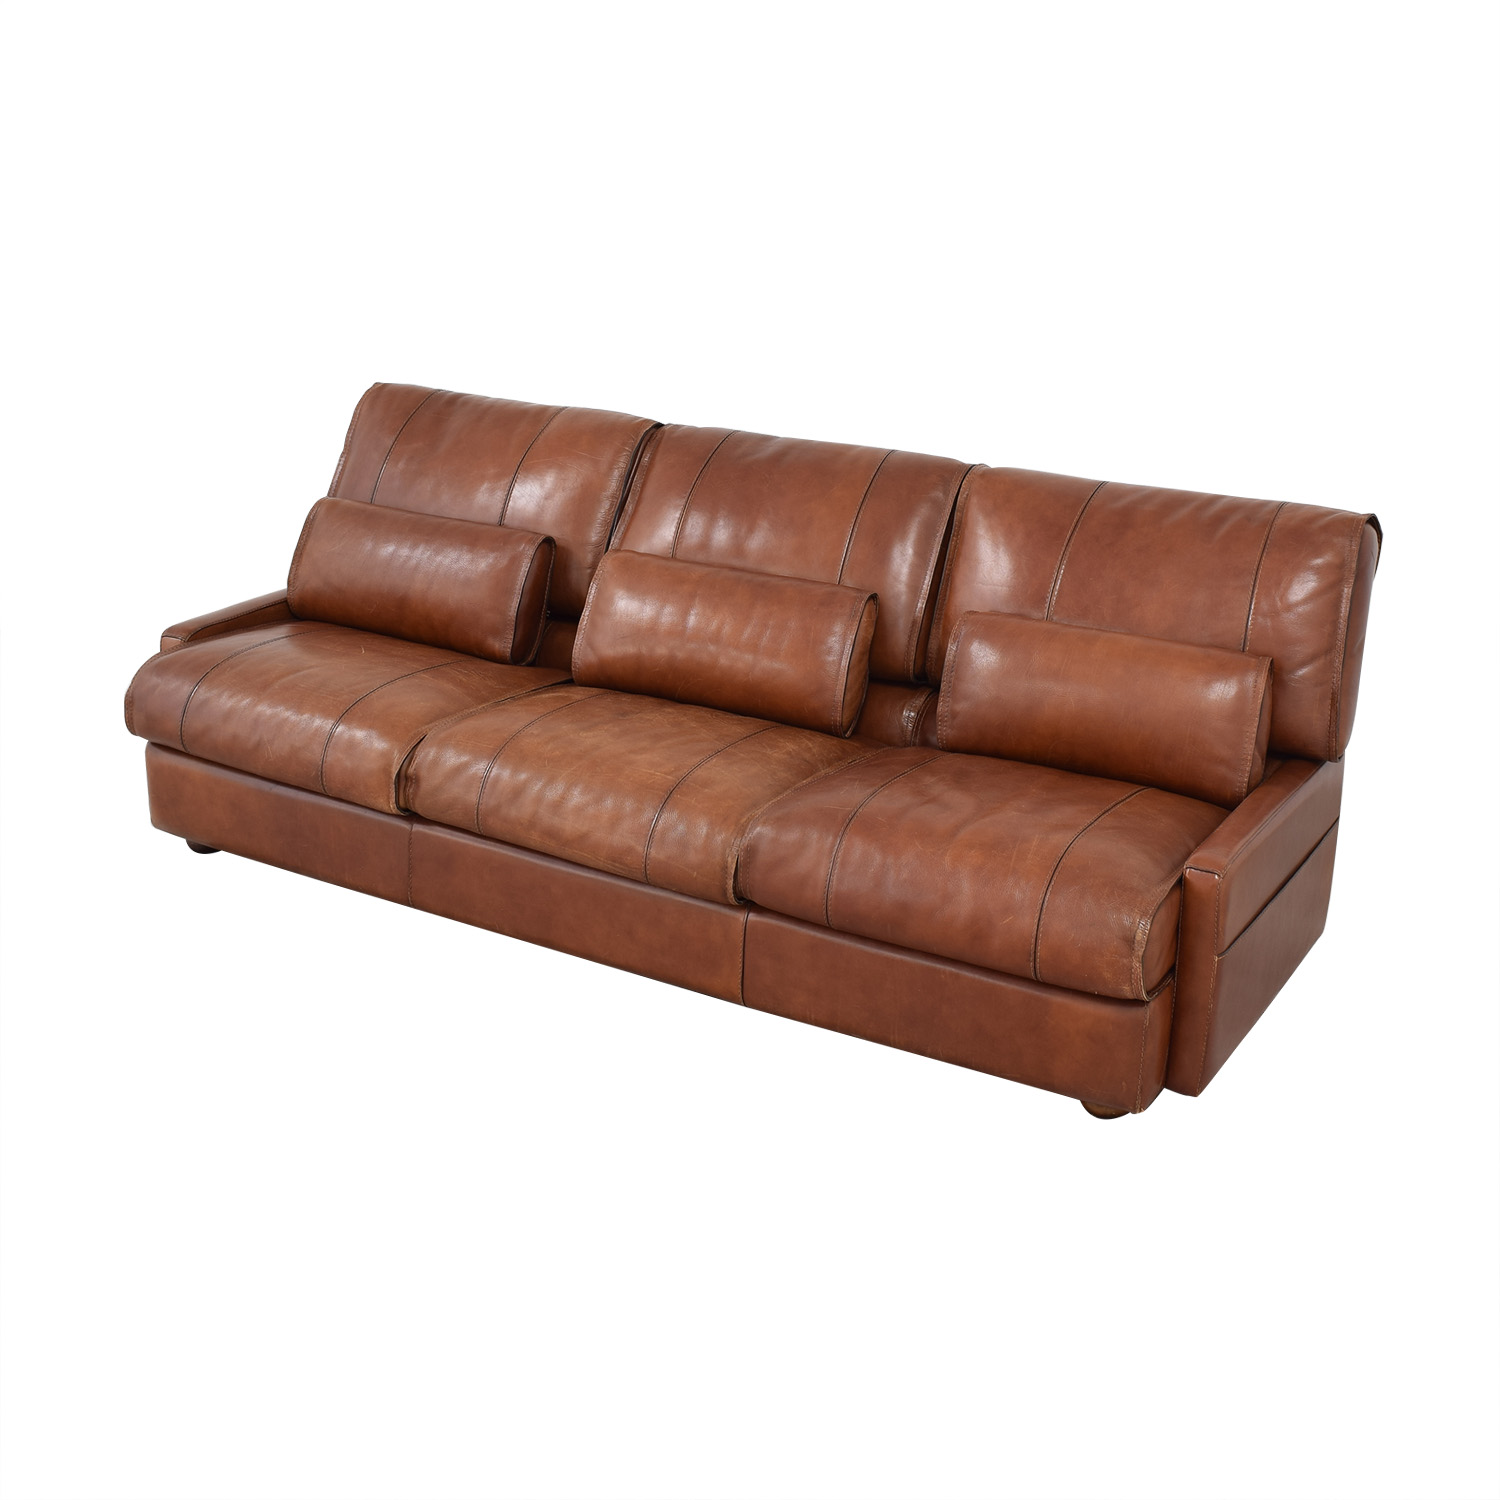 shop  Modern Italian Leather Sofa online